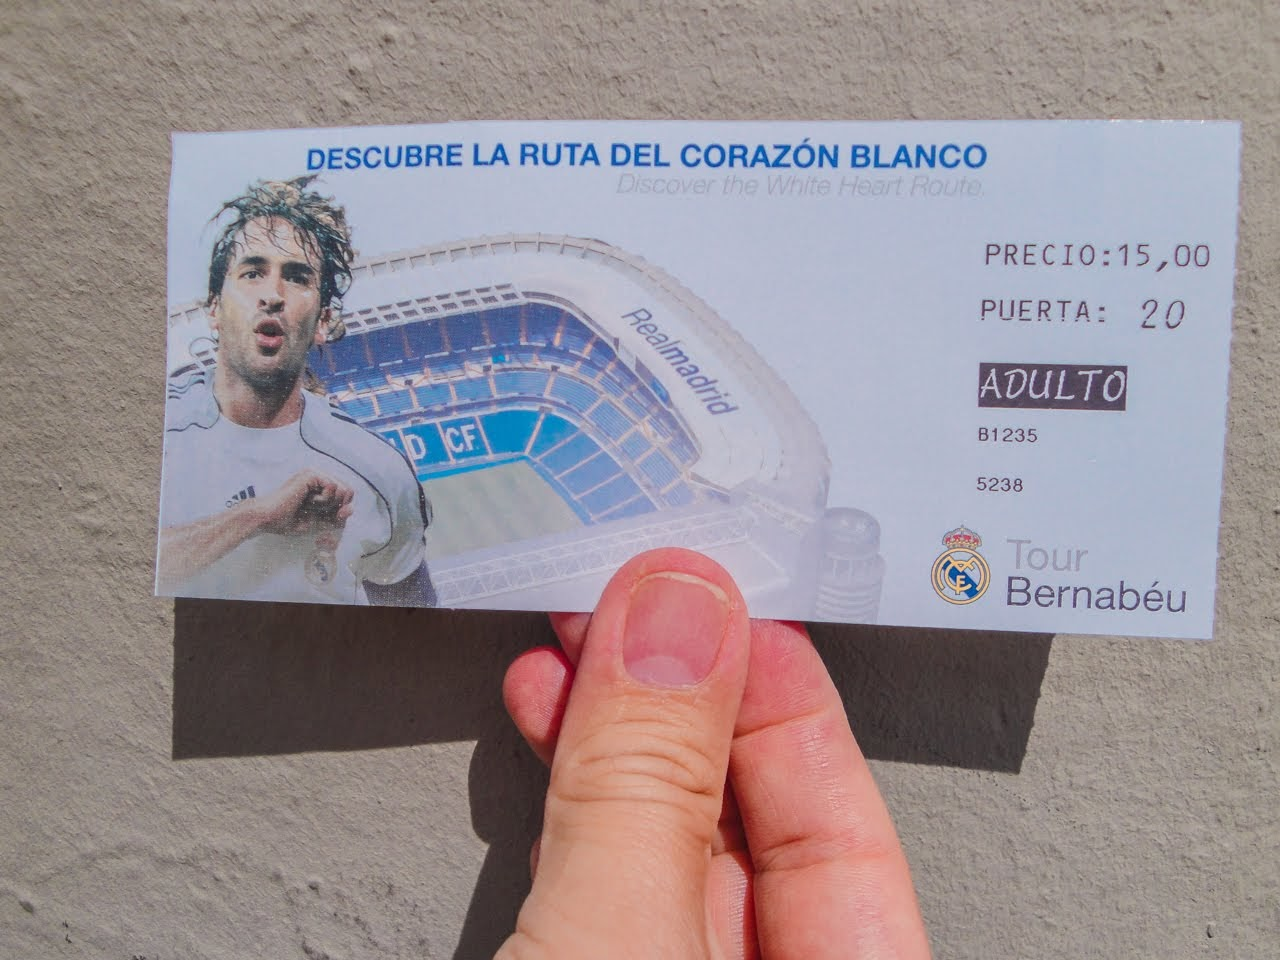 Holding up a ticket for the Tour Bernabéu